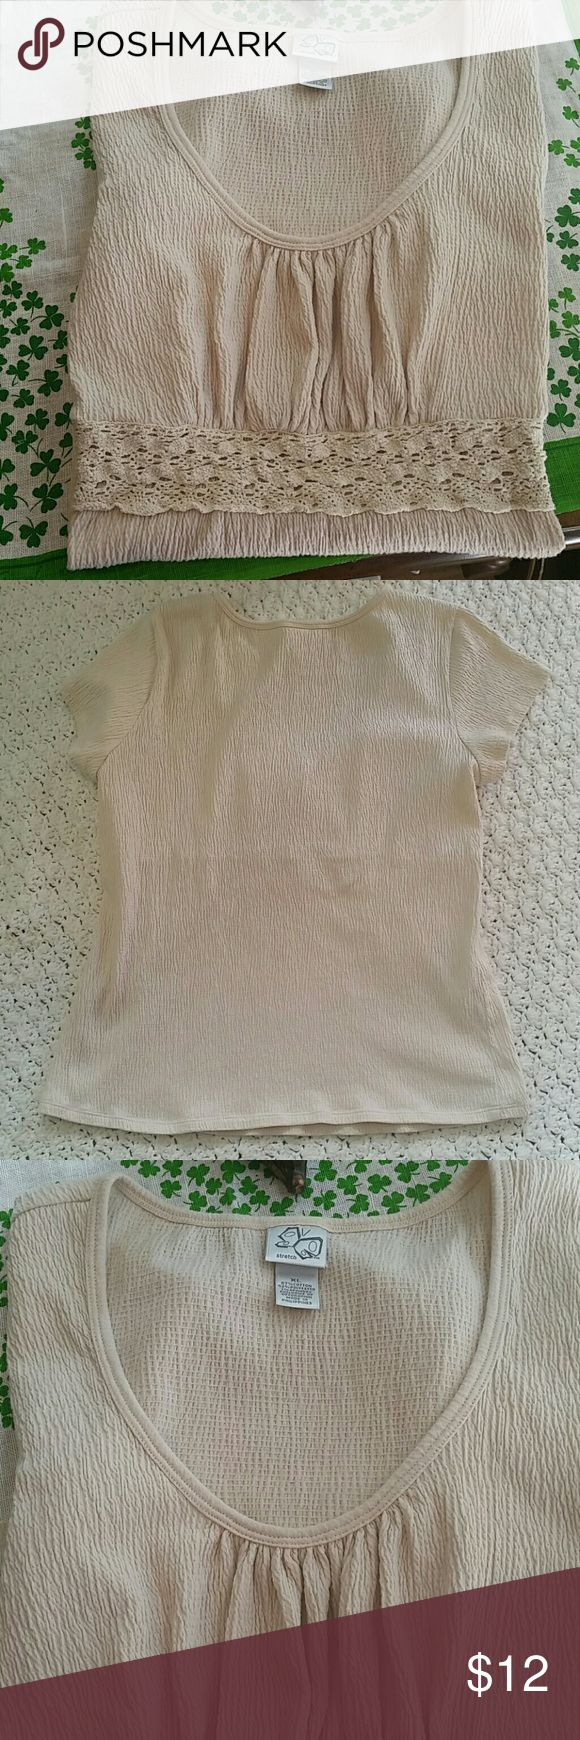 Ladies Short Sleeve Top Very pretty light beige short sleeve top. Soft material with lace detail in the front, top has a puckered look to it. Size is XL,  length is 24 inches, armpit to armpit is 18 inches,  EUC no flaws  Smoke Free Home Tops